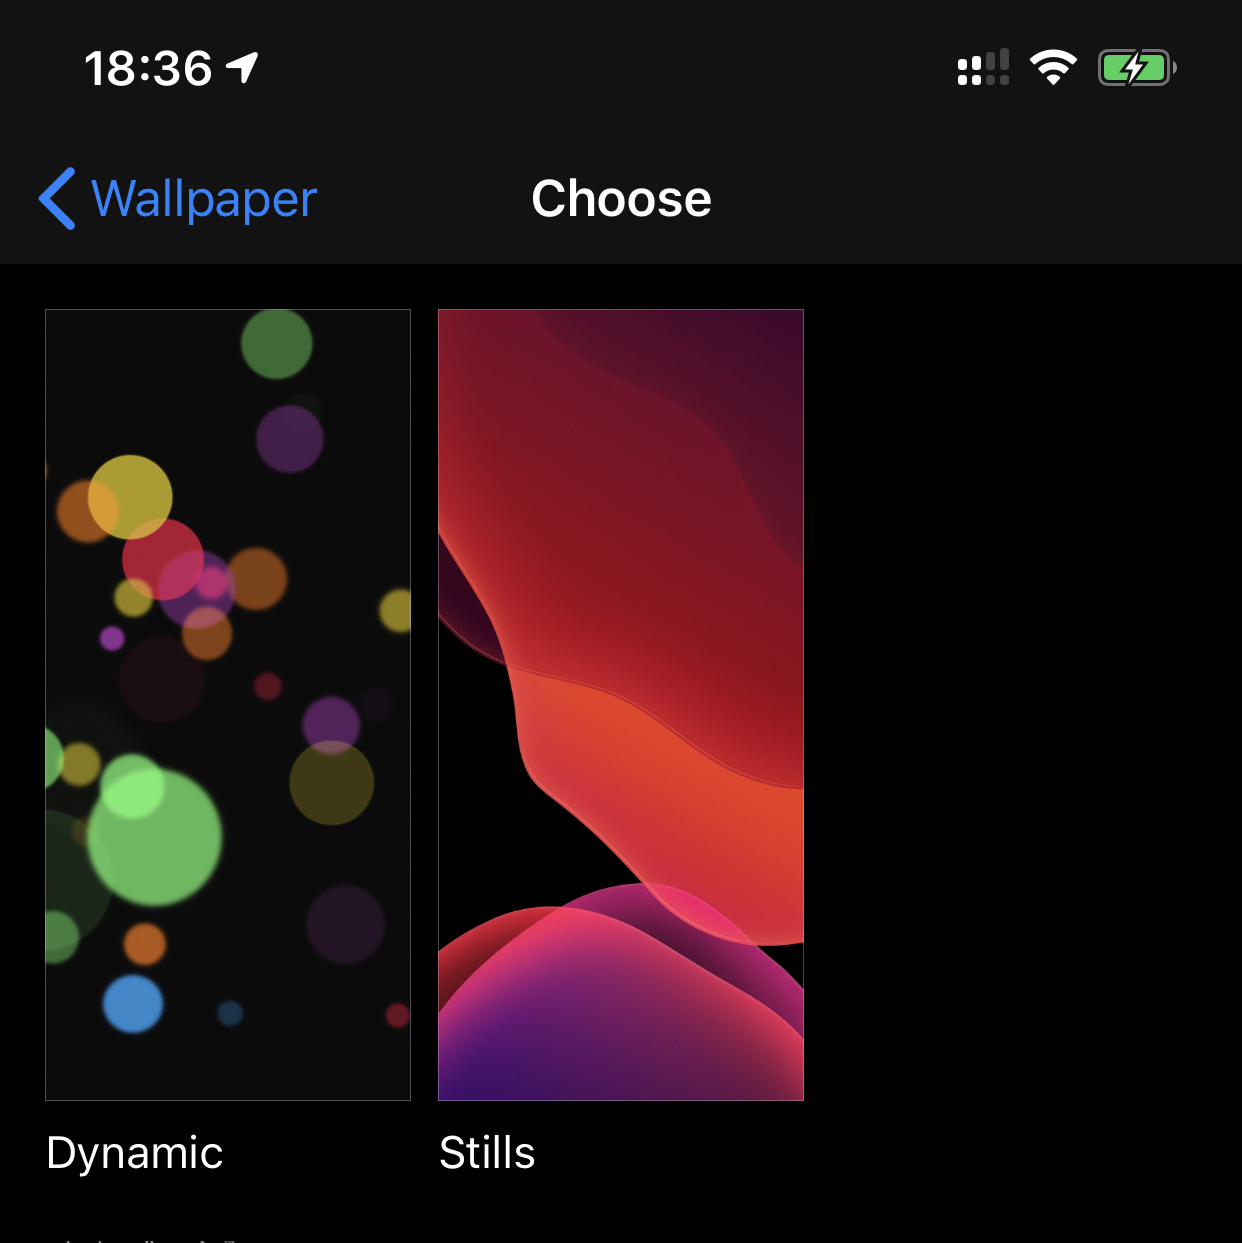 New Wallpapers Missing On Iphone 11 Pro Max 13 1 Beta 4 Macrumors Forums